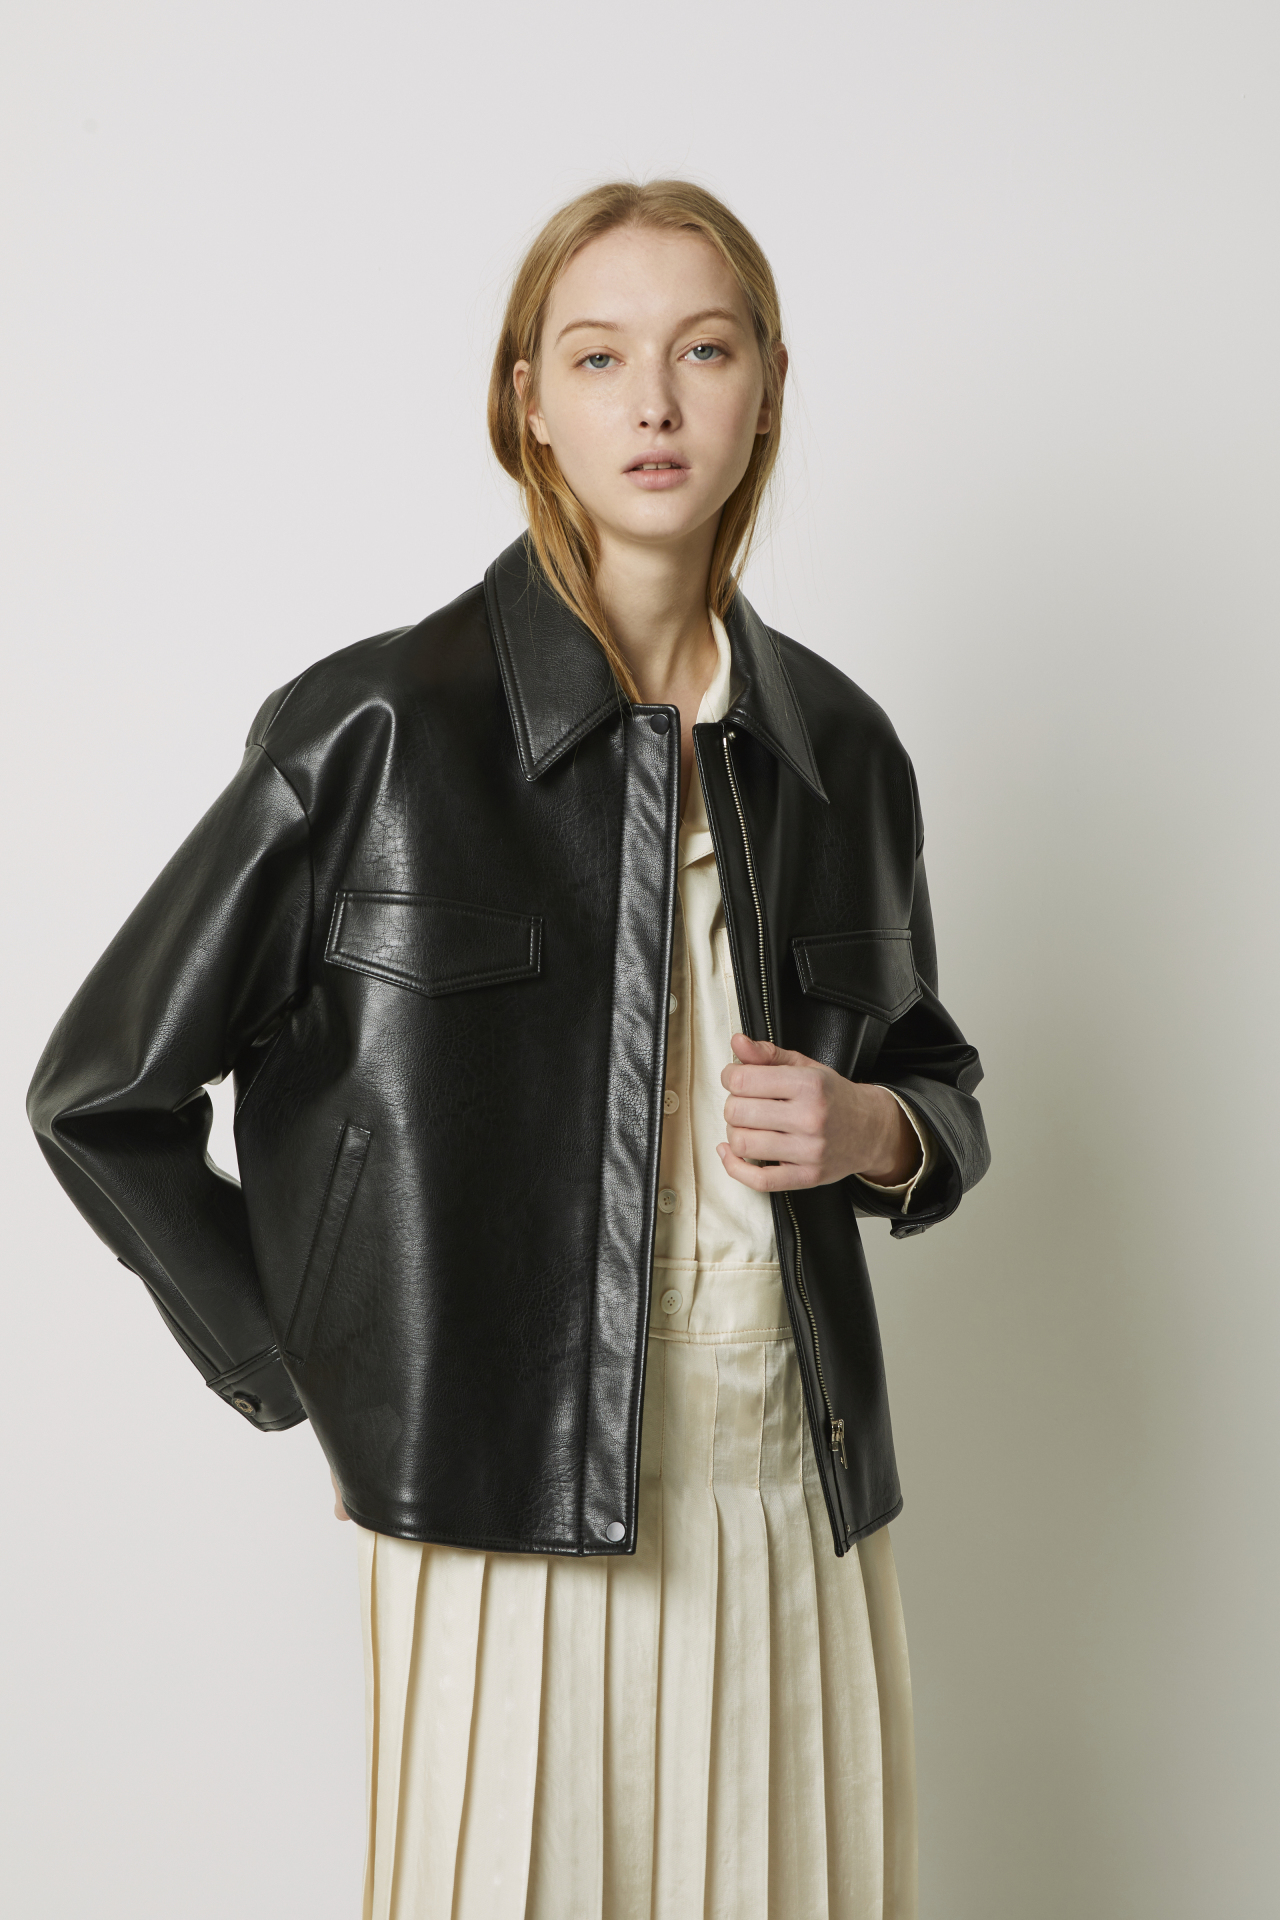 A model wears vegan leather jackets from LF's eco-friendly fashion line under its brand A.T.Corner. (LF)